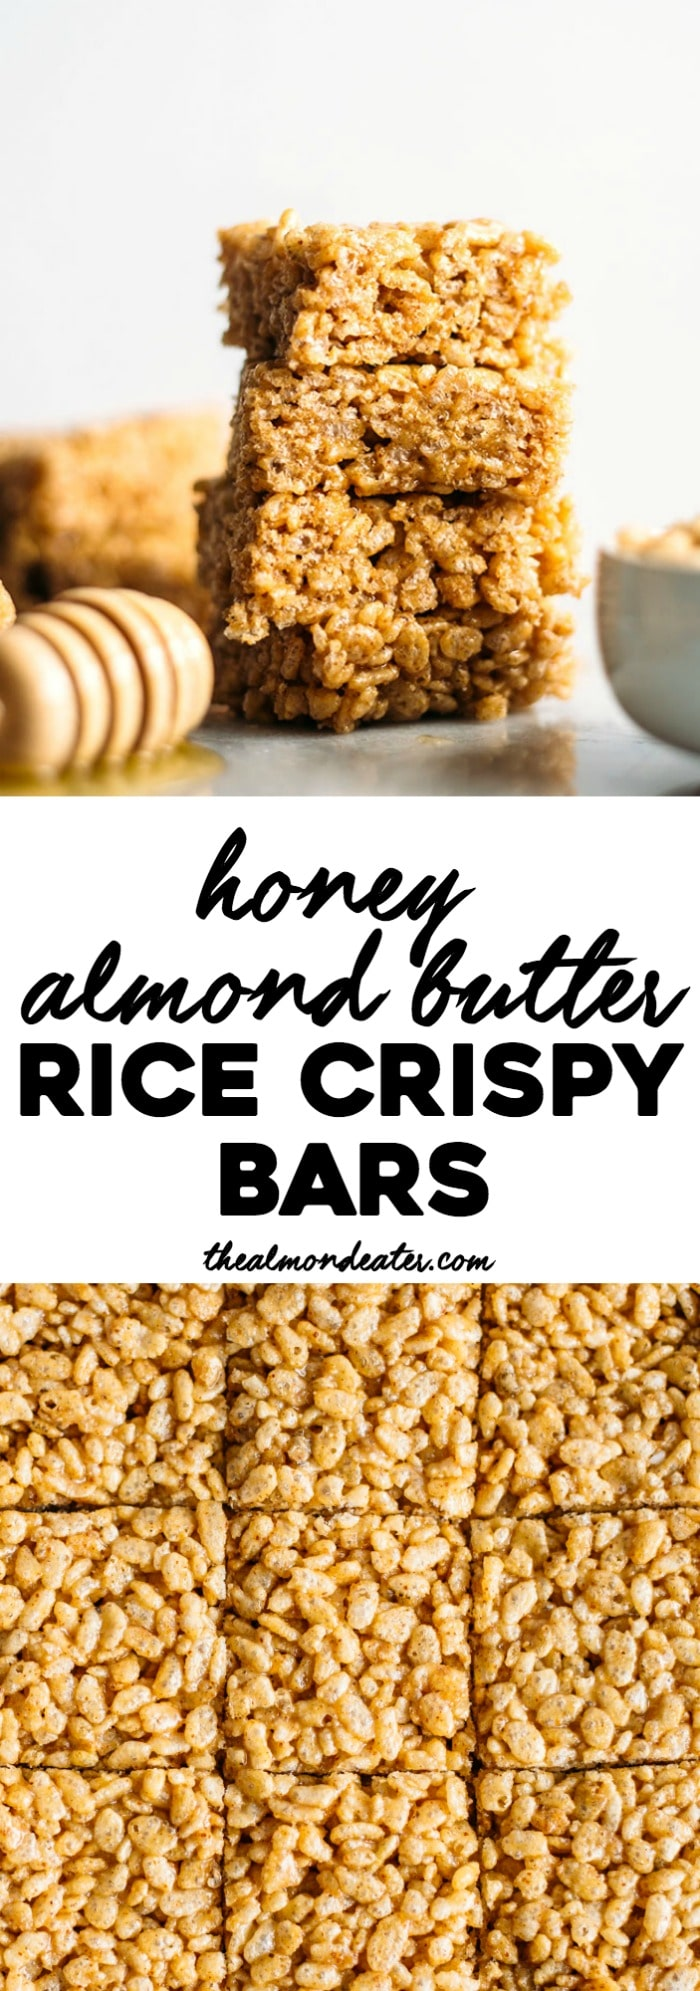 Honey Almond Butter Rice Crispy Bars | Snack bars made with gluten free cereal--4 ingredients, 5 minutes and they're kid-friendly too! | thealmondeater.com